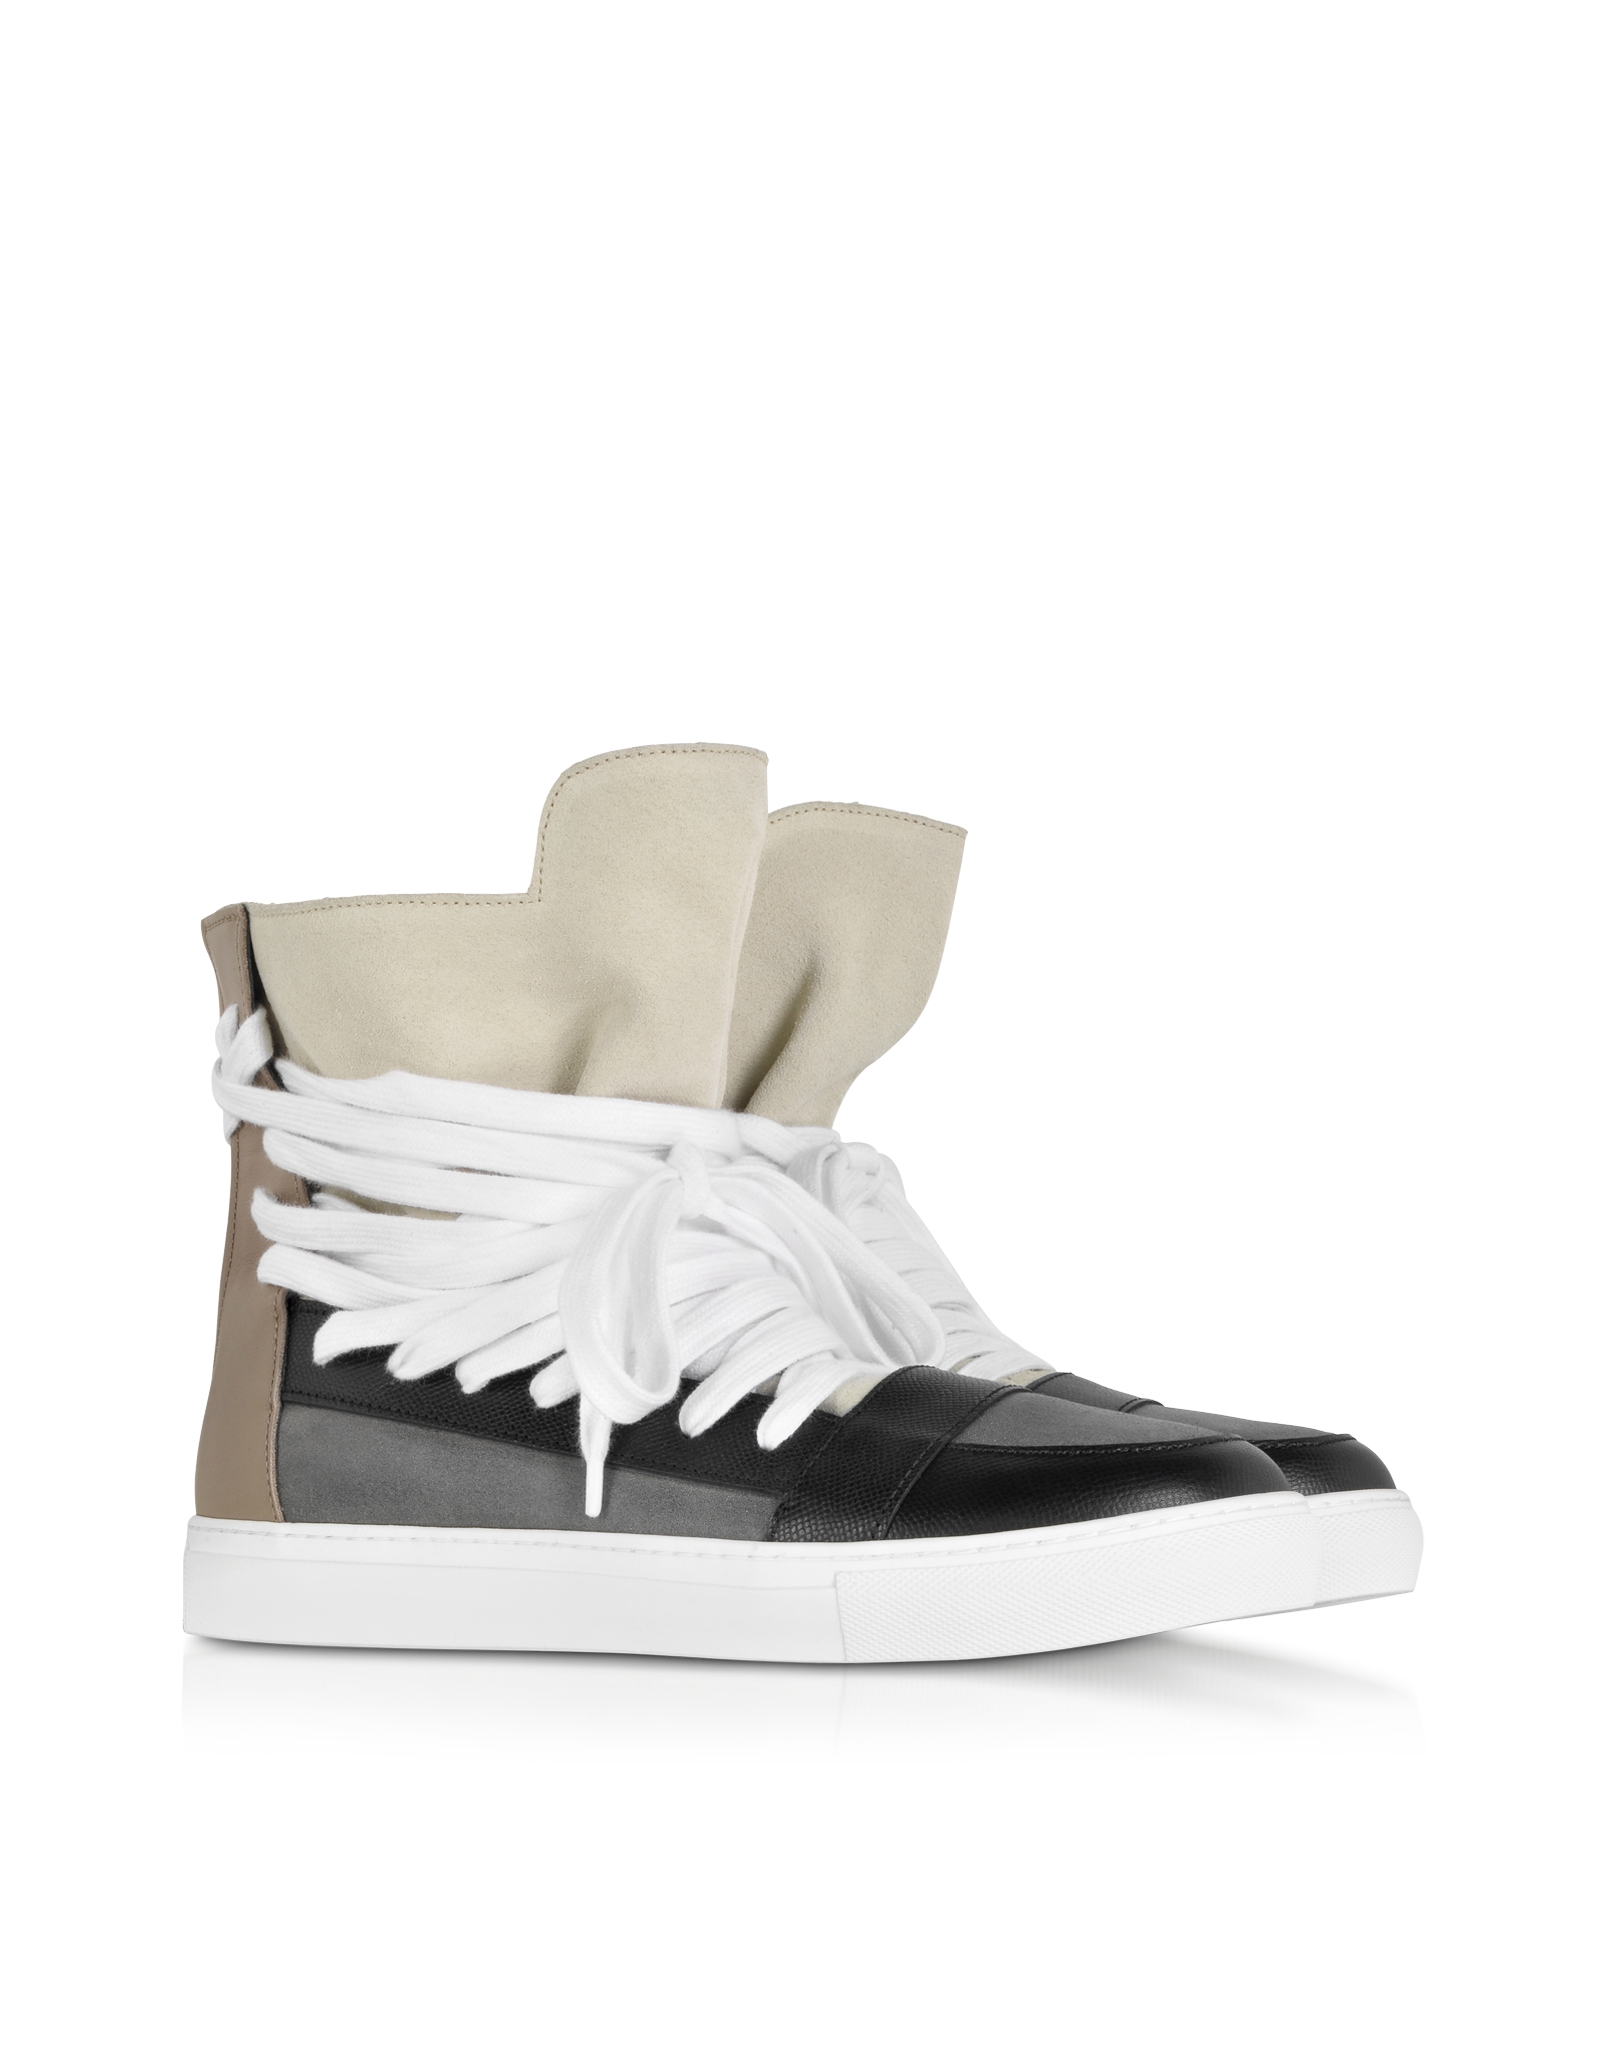 019fafe96a Lyst - Kris Van Assche Multi Brown Multilaces High Top Sneaker in Black for  Men